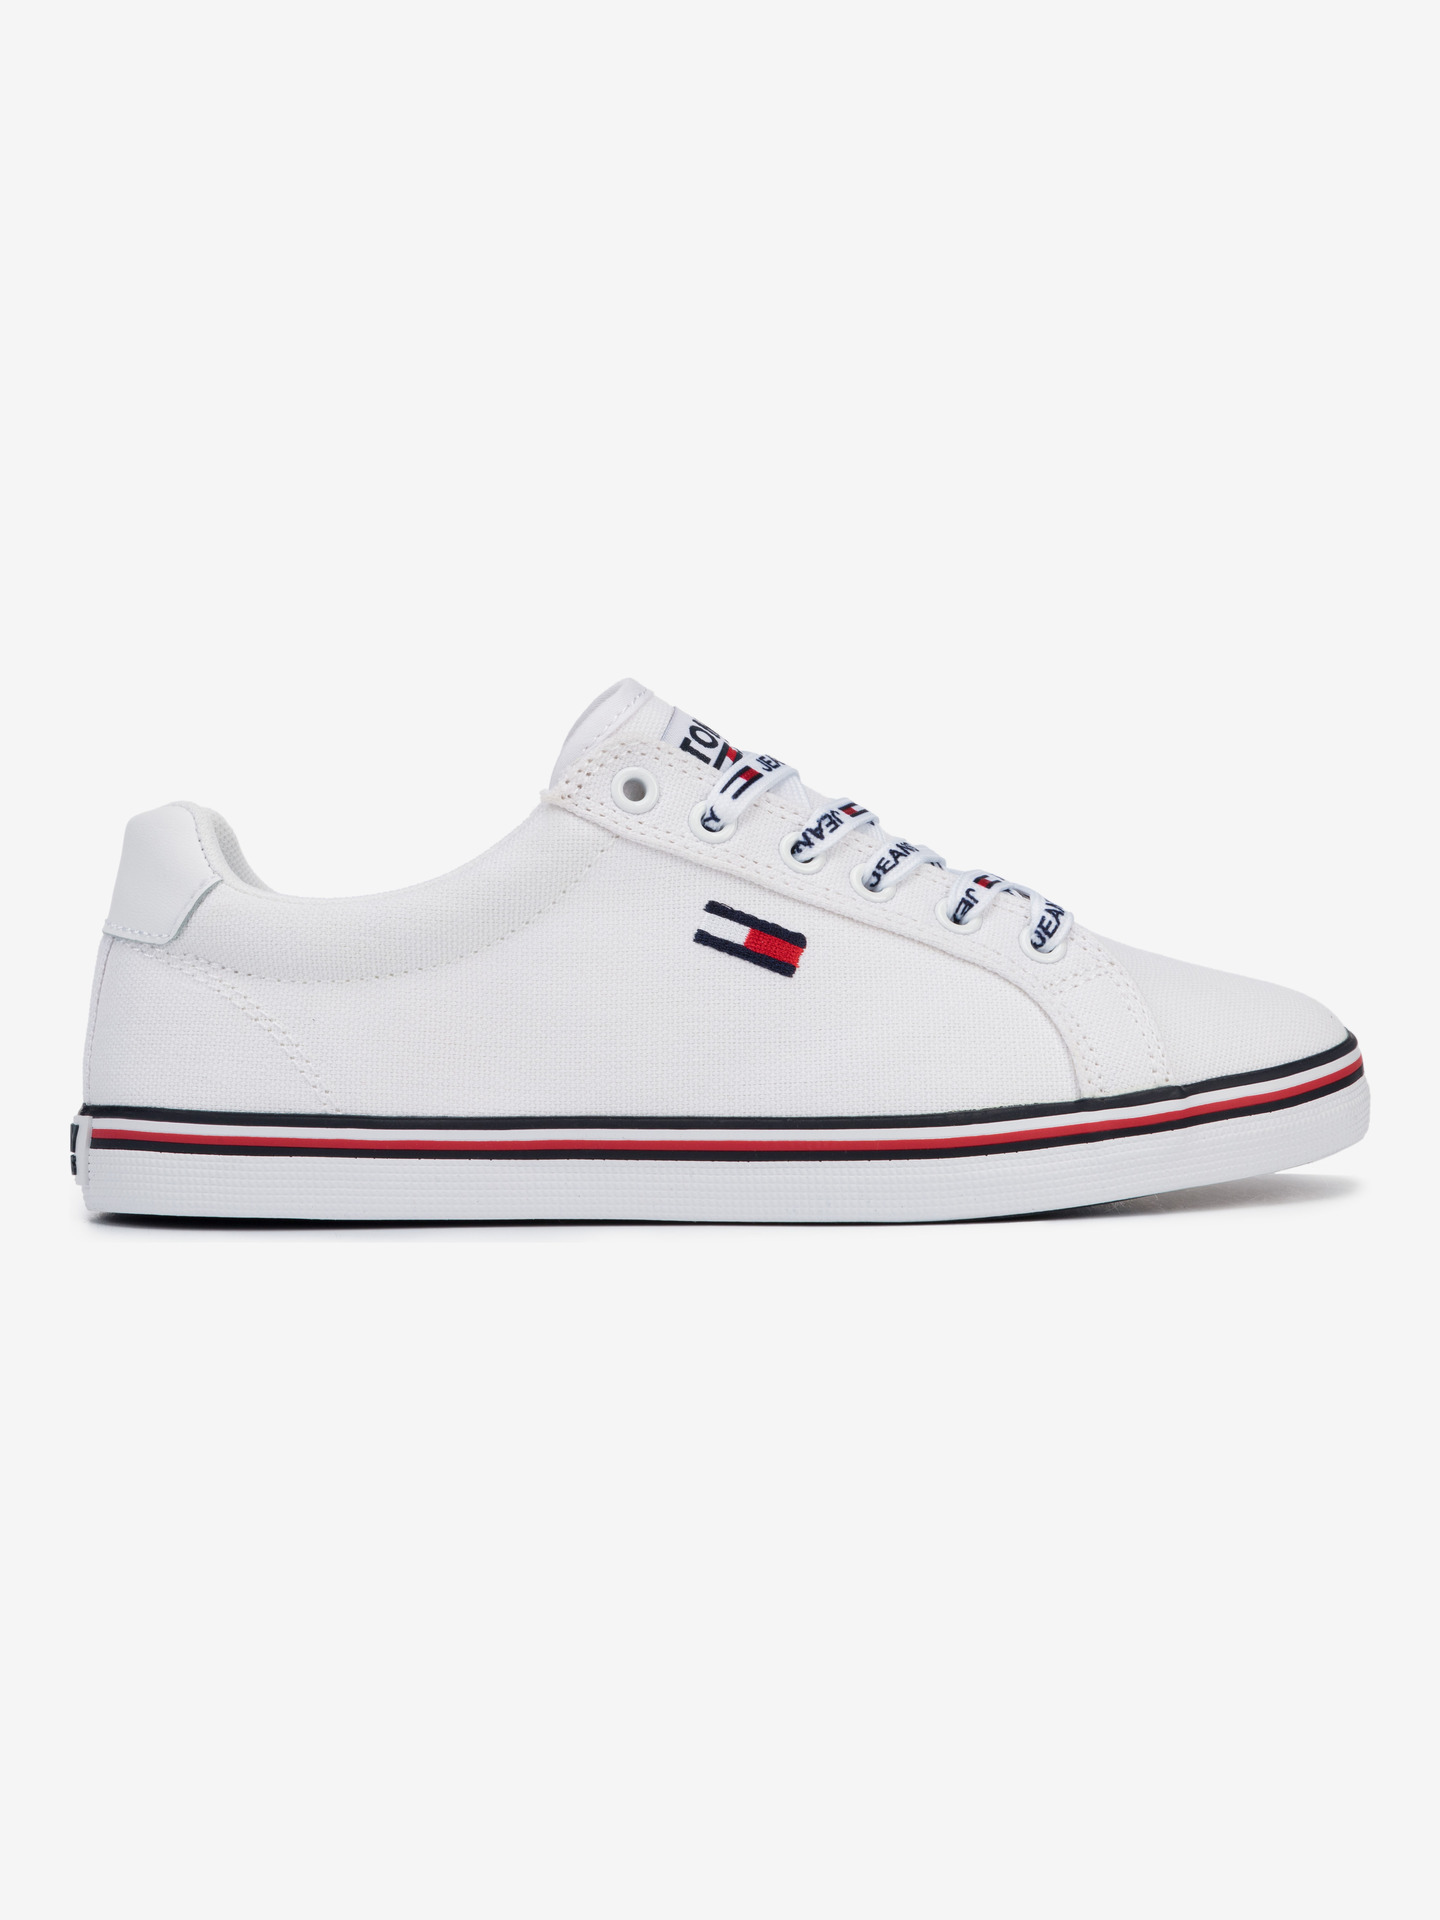 Essential Lace Up Tenisky Tommy Jeans Biela